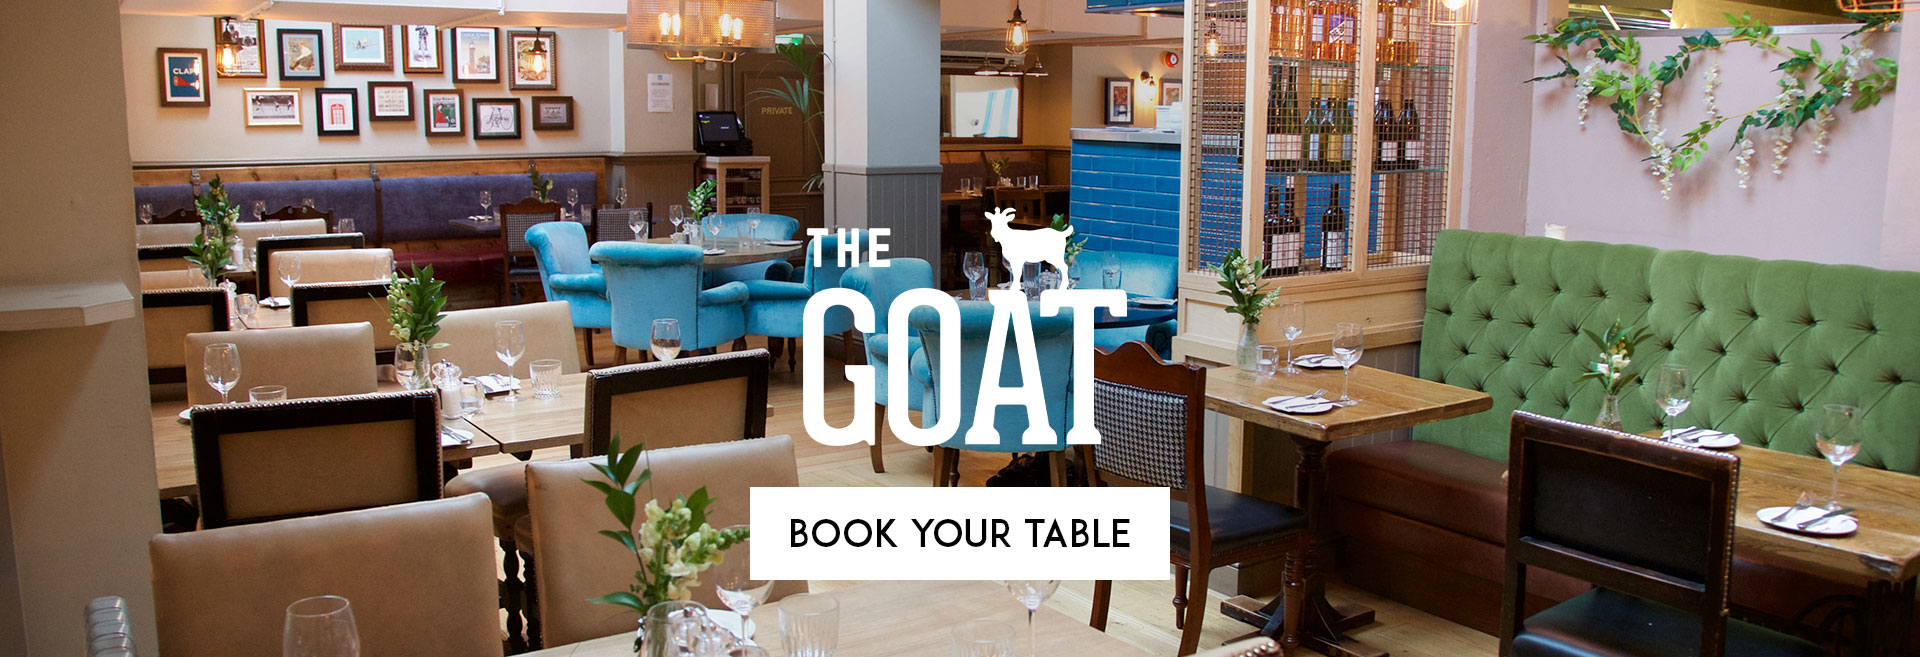 Book Your Table at The Goat